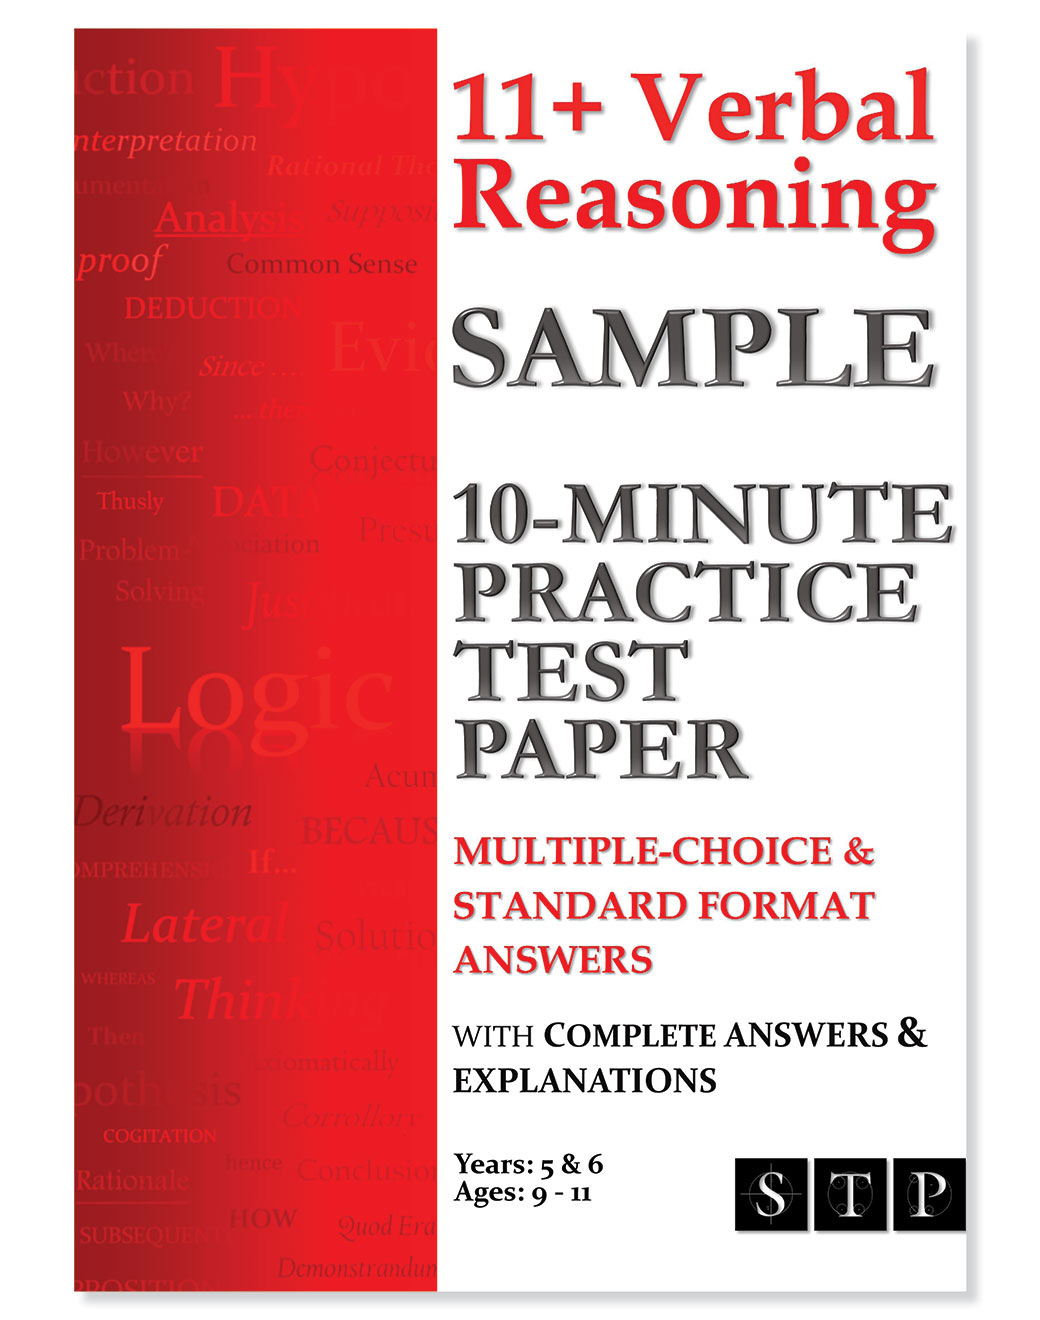 STP Books 11+ Verbal Reasoning Sample 10-Minute Practice Test Paper: Multiple-Choice & Standard Format Answers: Ages 9-11